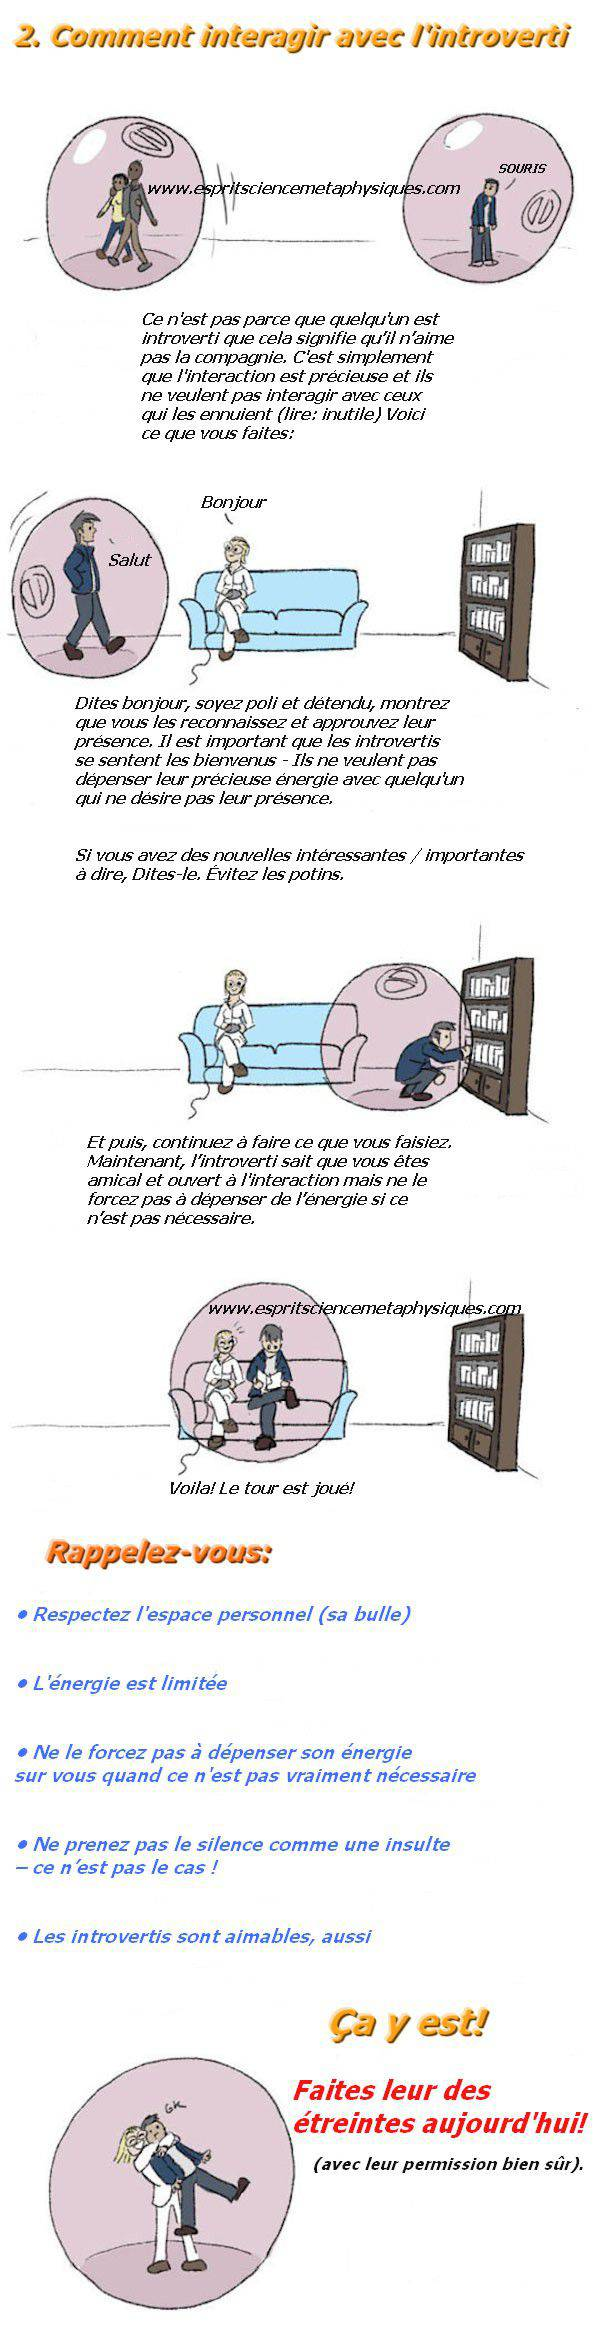 Personnes introverties